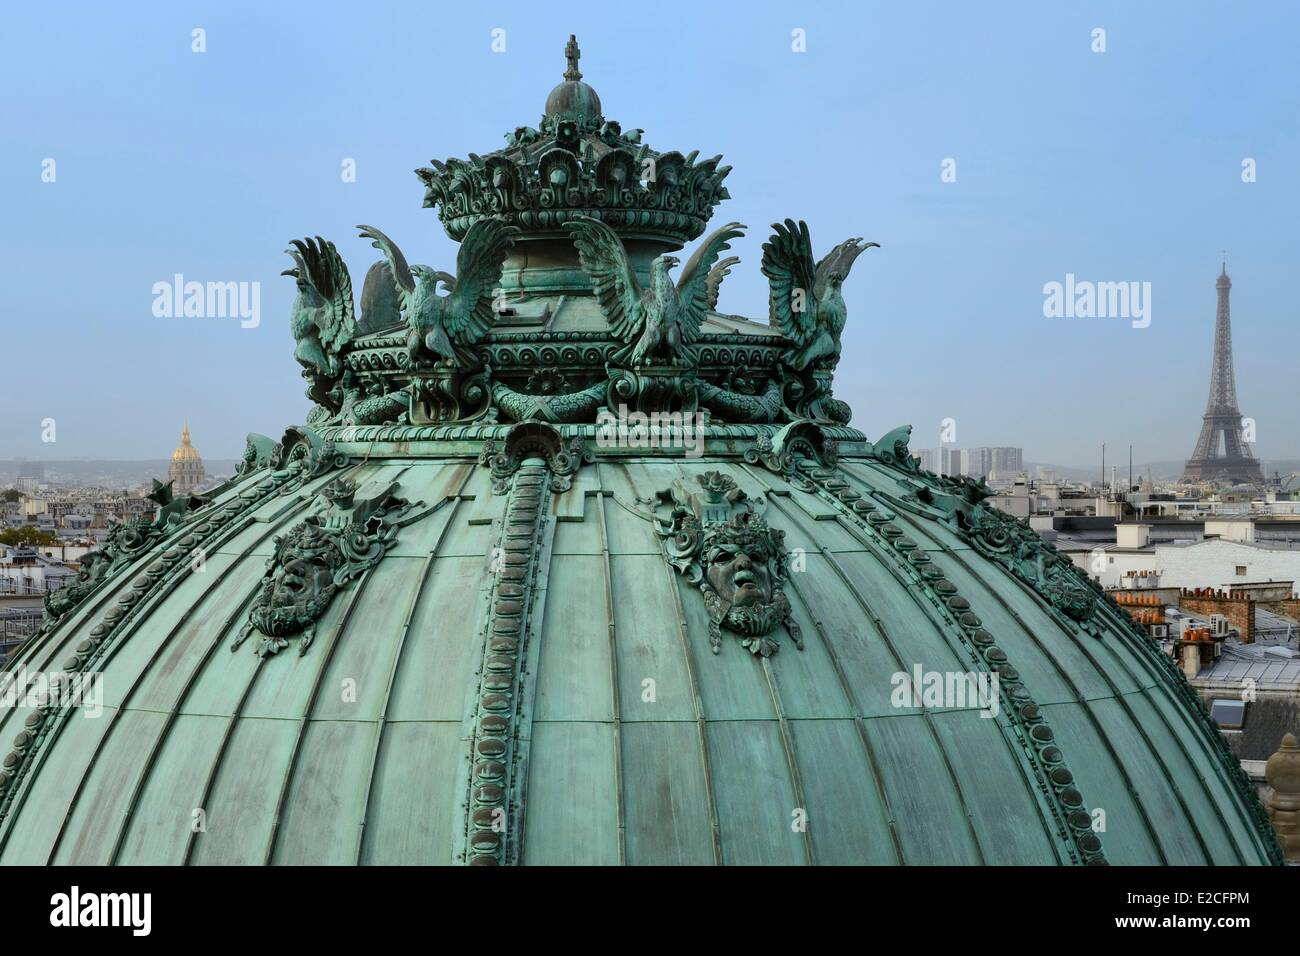 France, Paris, Garnier Opera, rotunda cupola of the season ticket holders and the Eiffel Tower - Stock Image